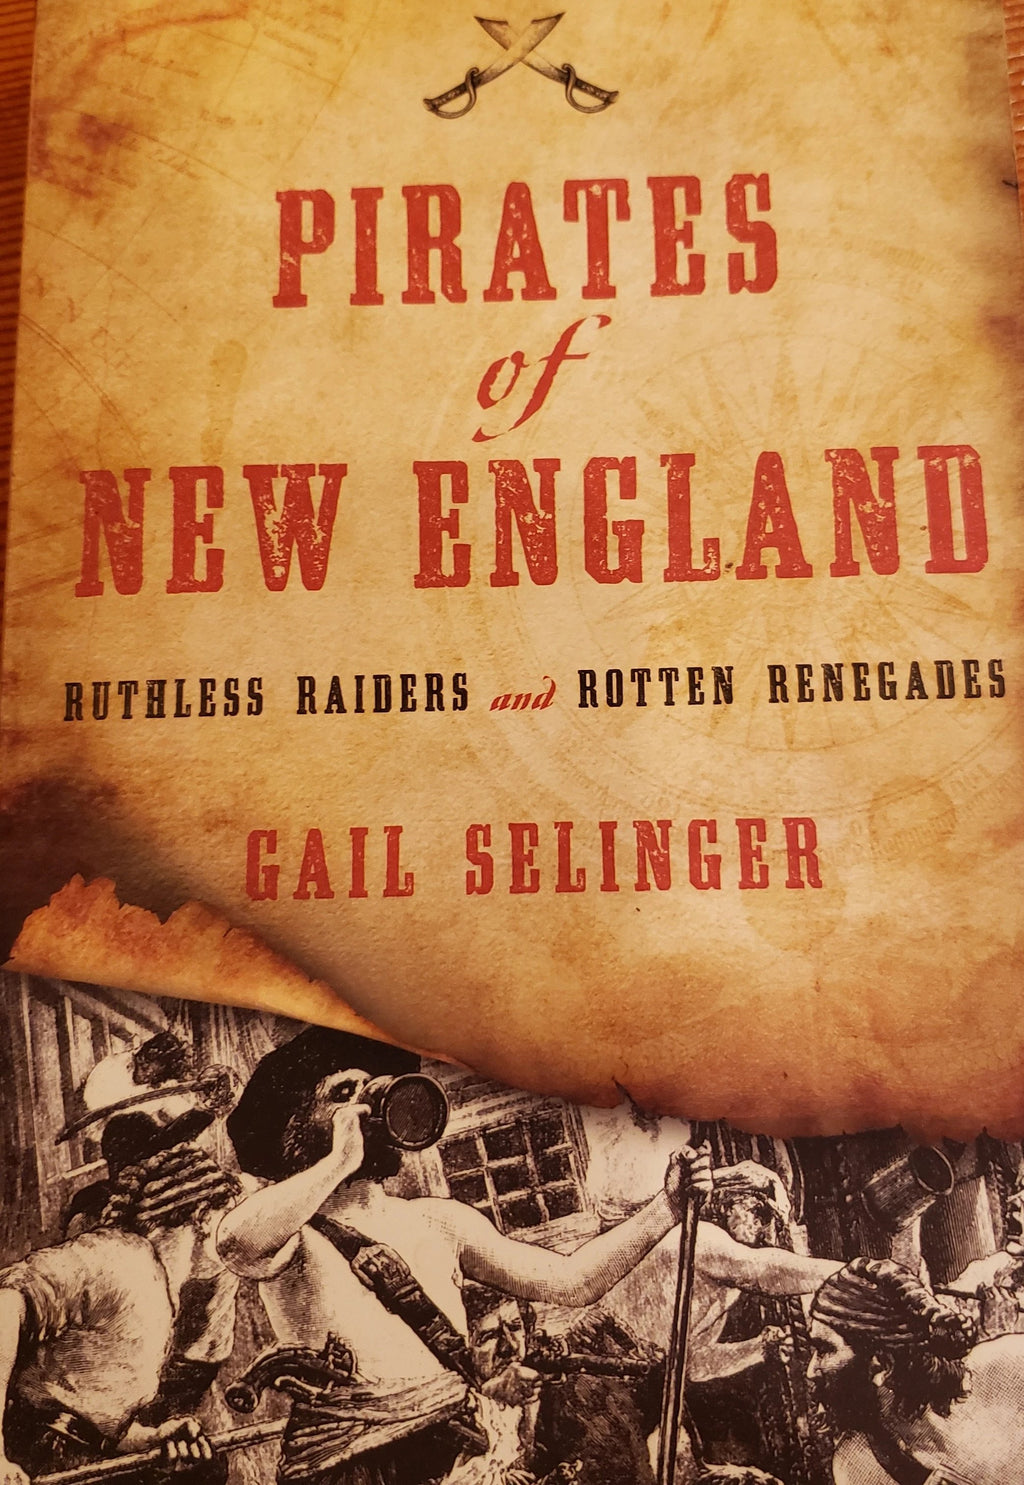 Pirates of New England by Gail Selinger